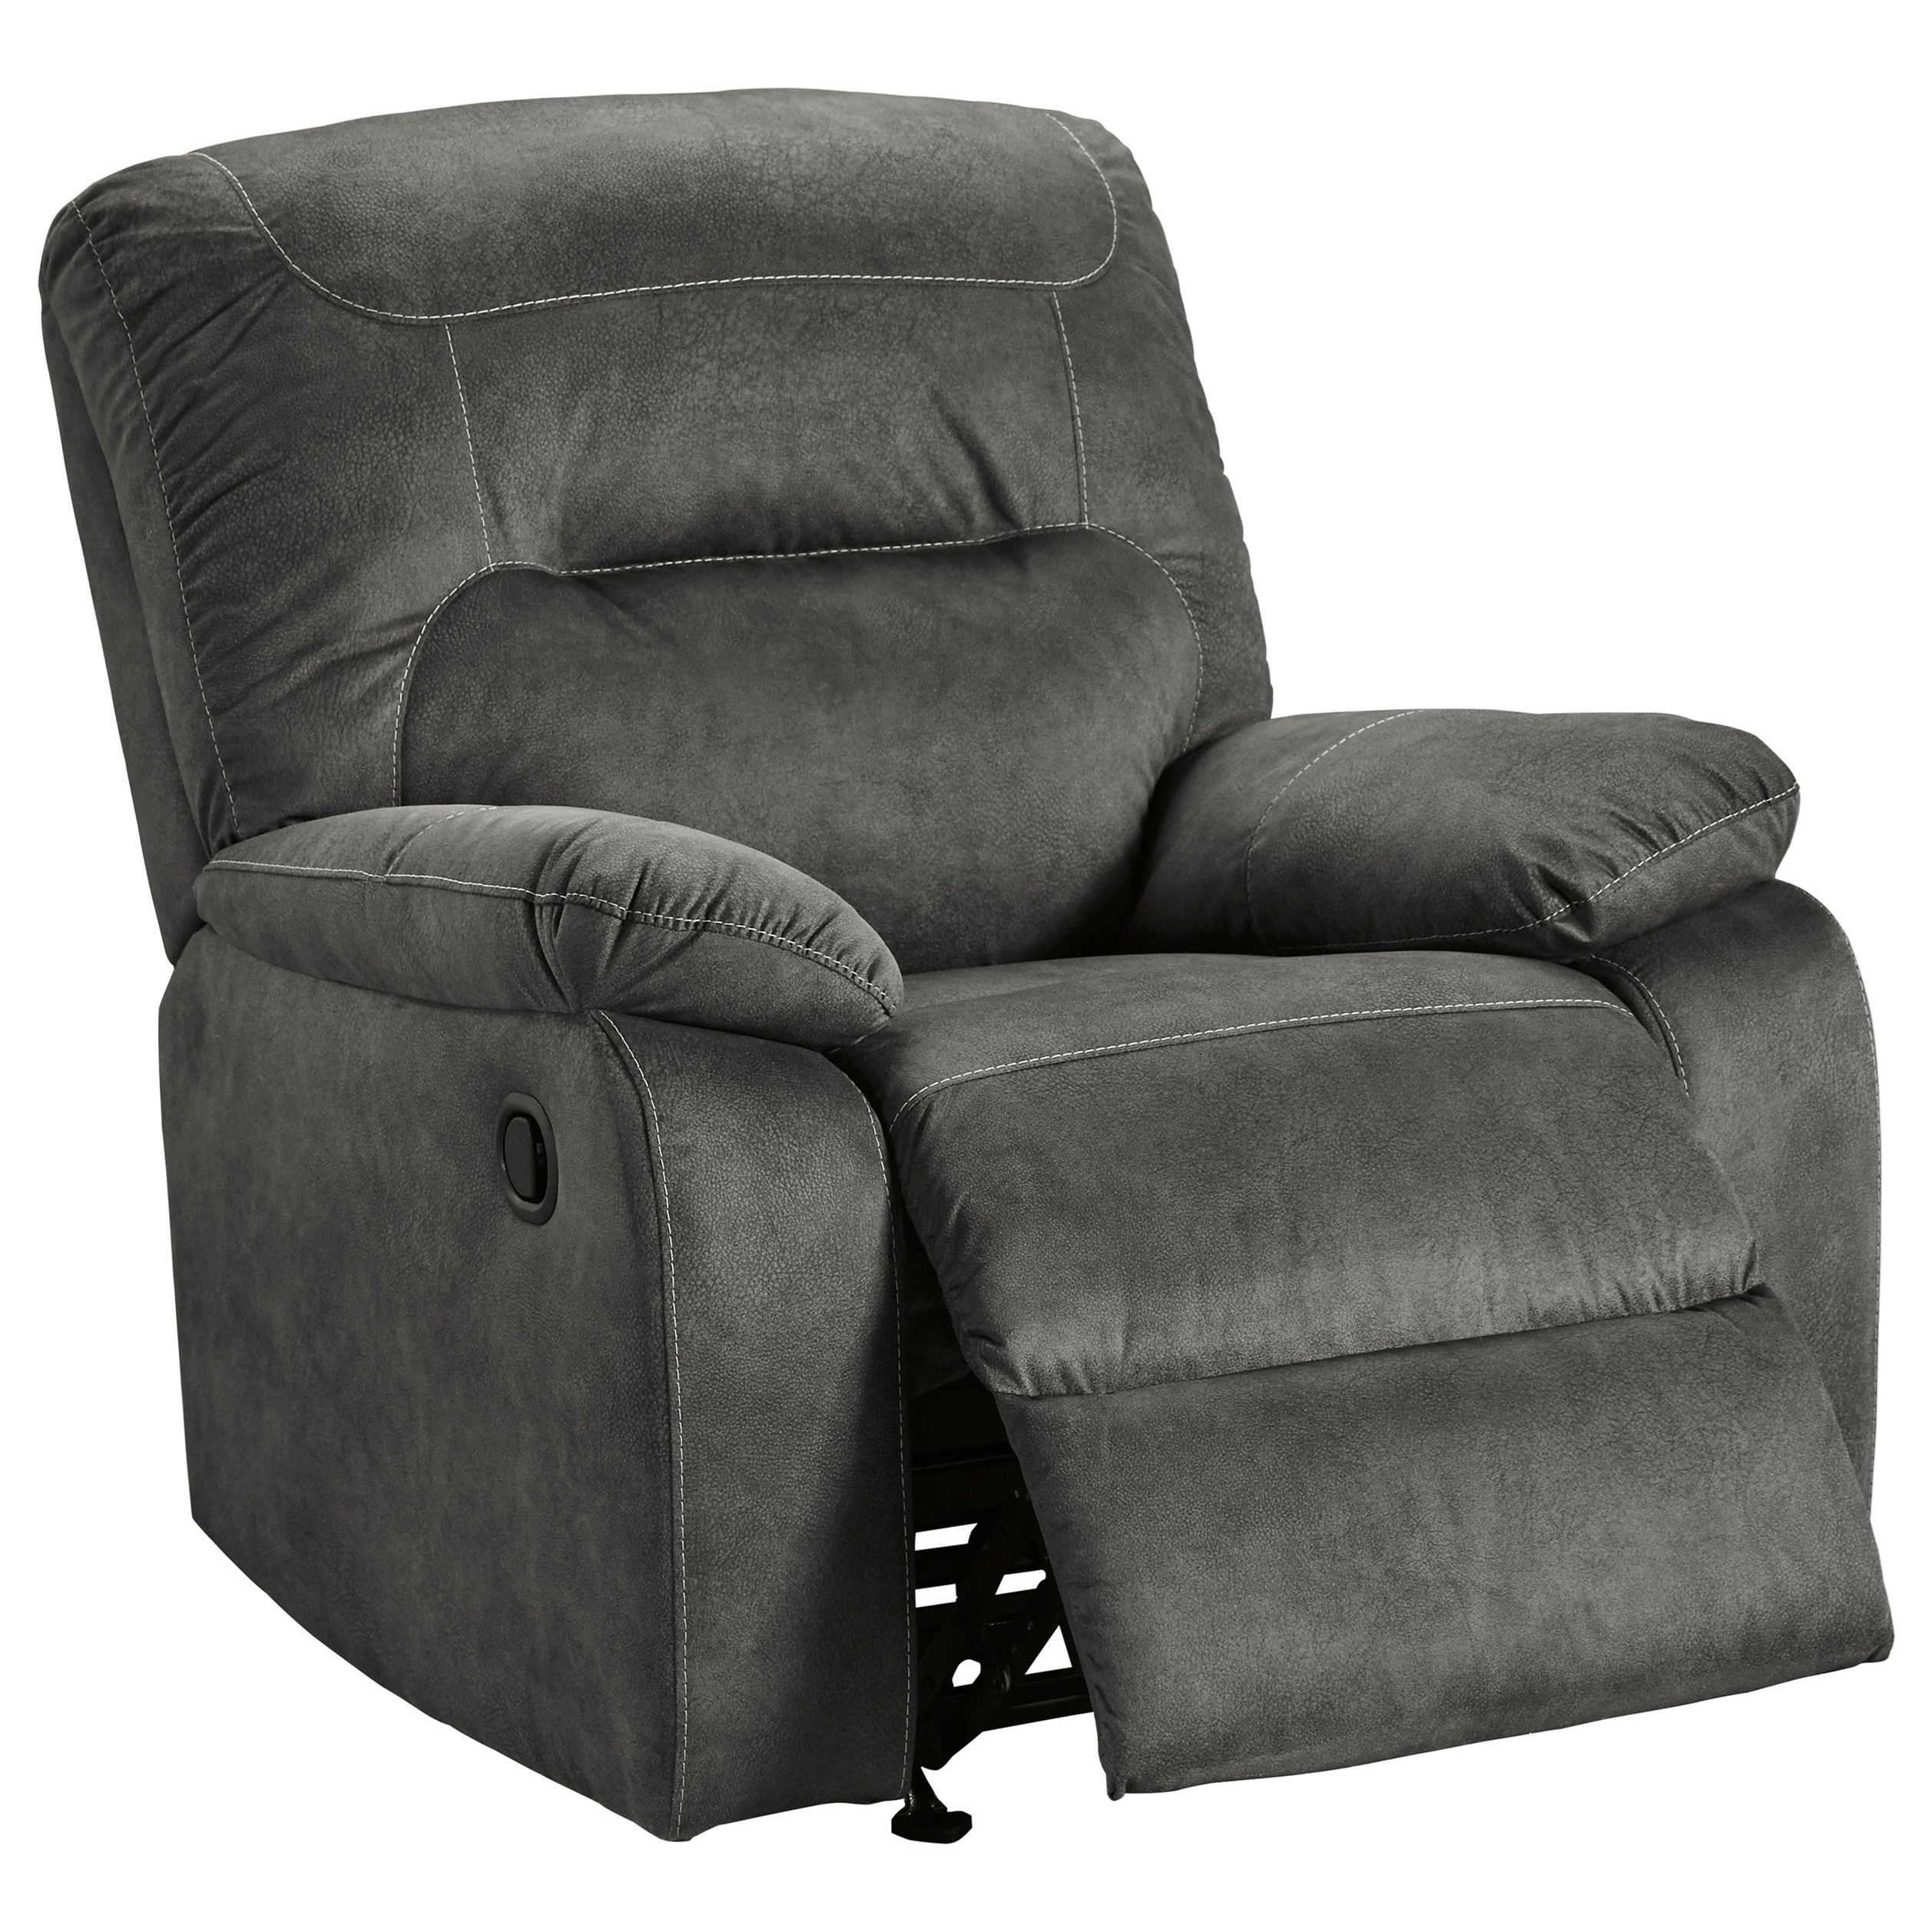 Bolzano Rocker Recliner by Benchcraft at Standard Furniture